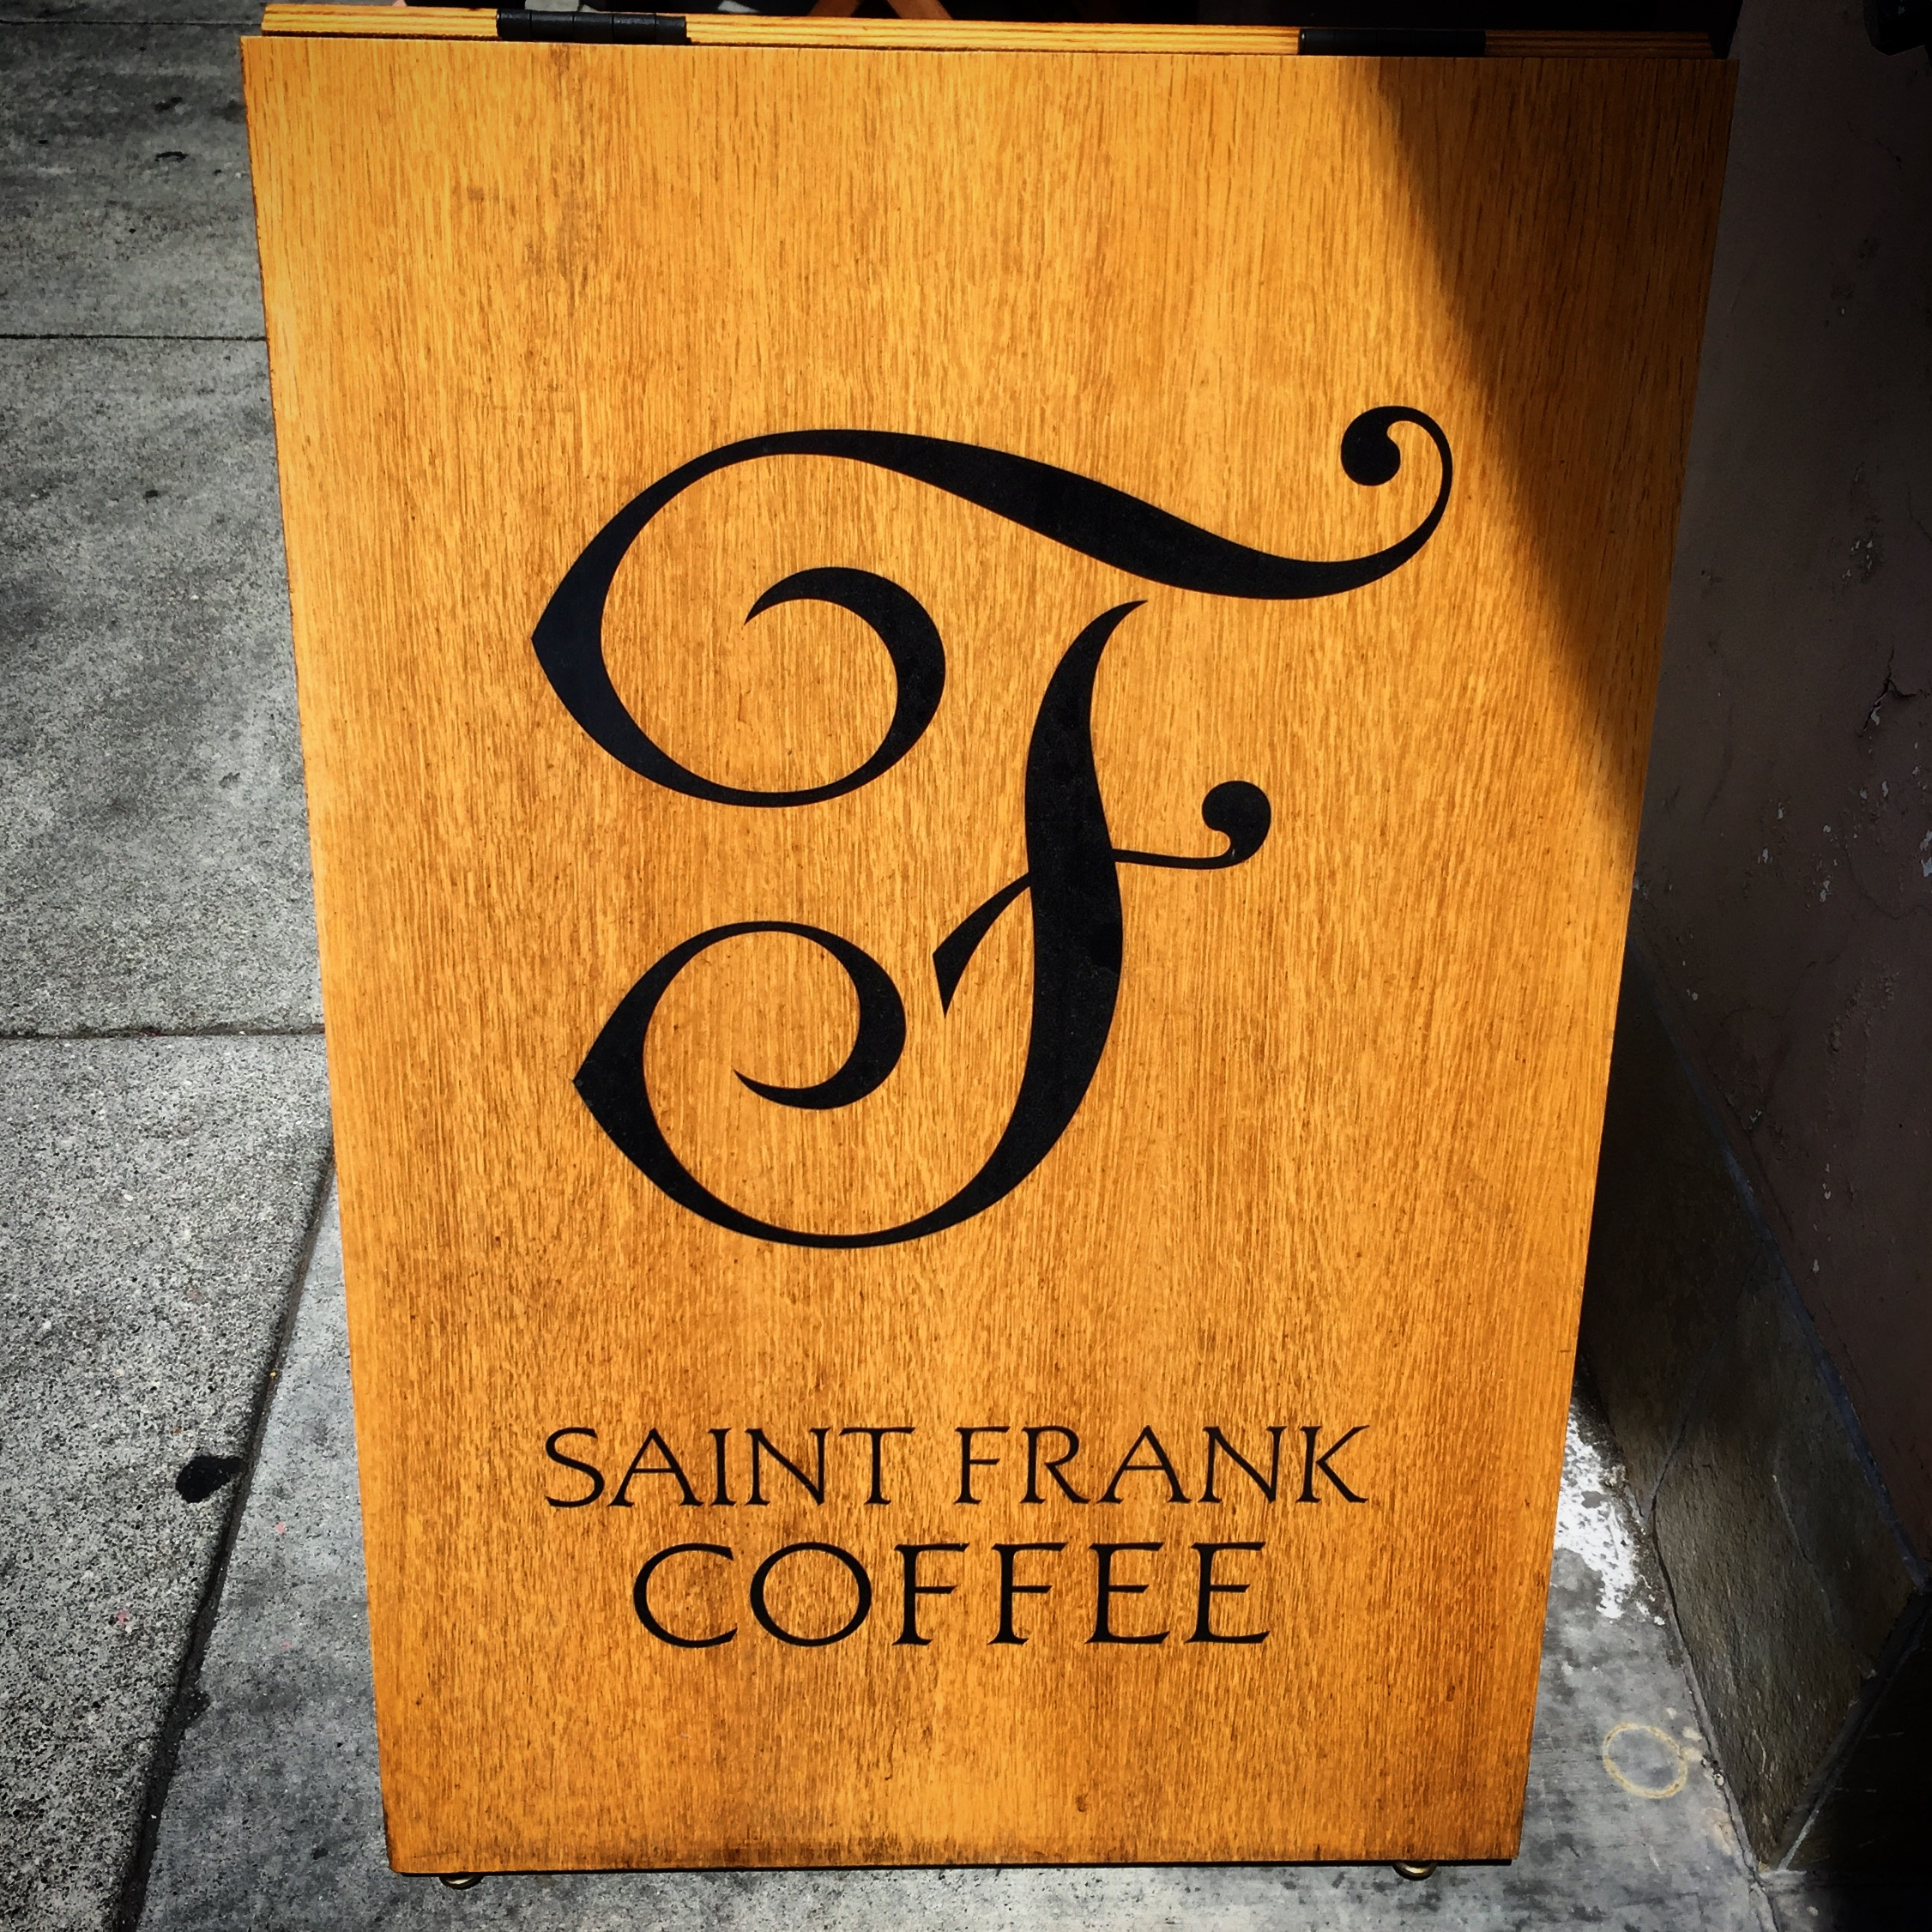 One of my favorite coffee joints in SF, on Polk.